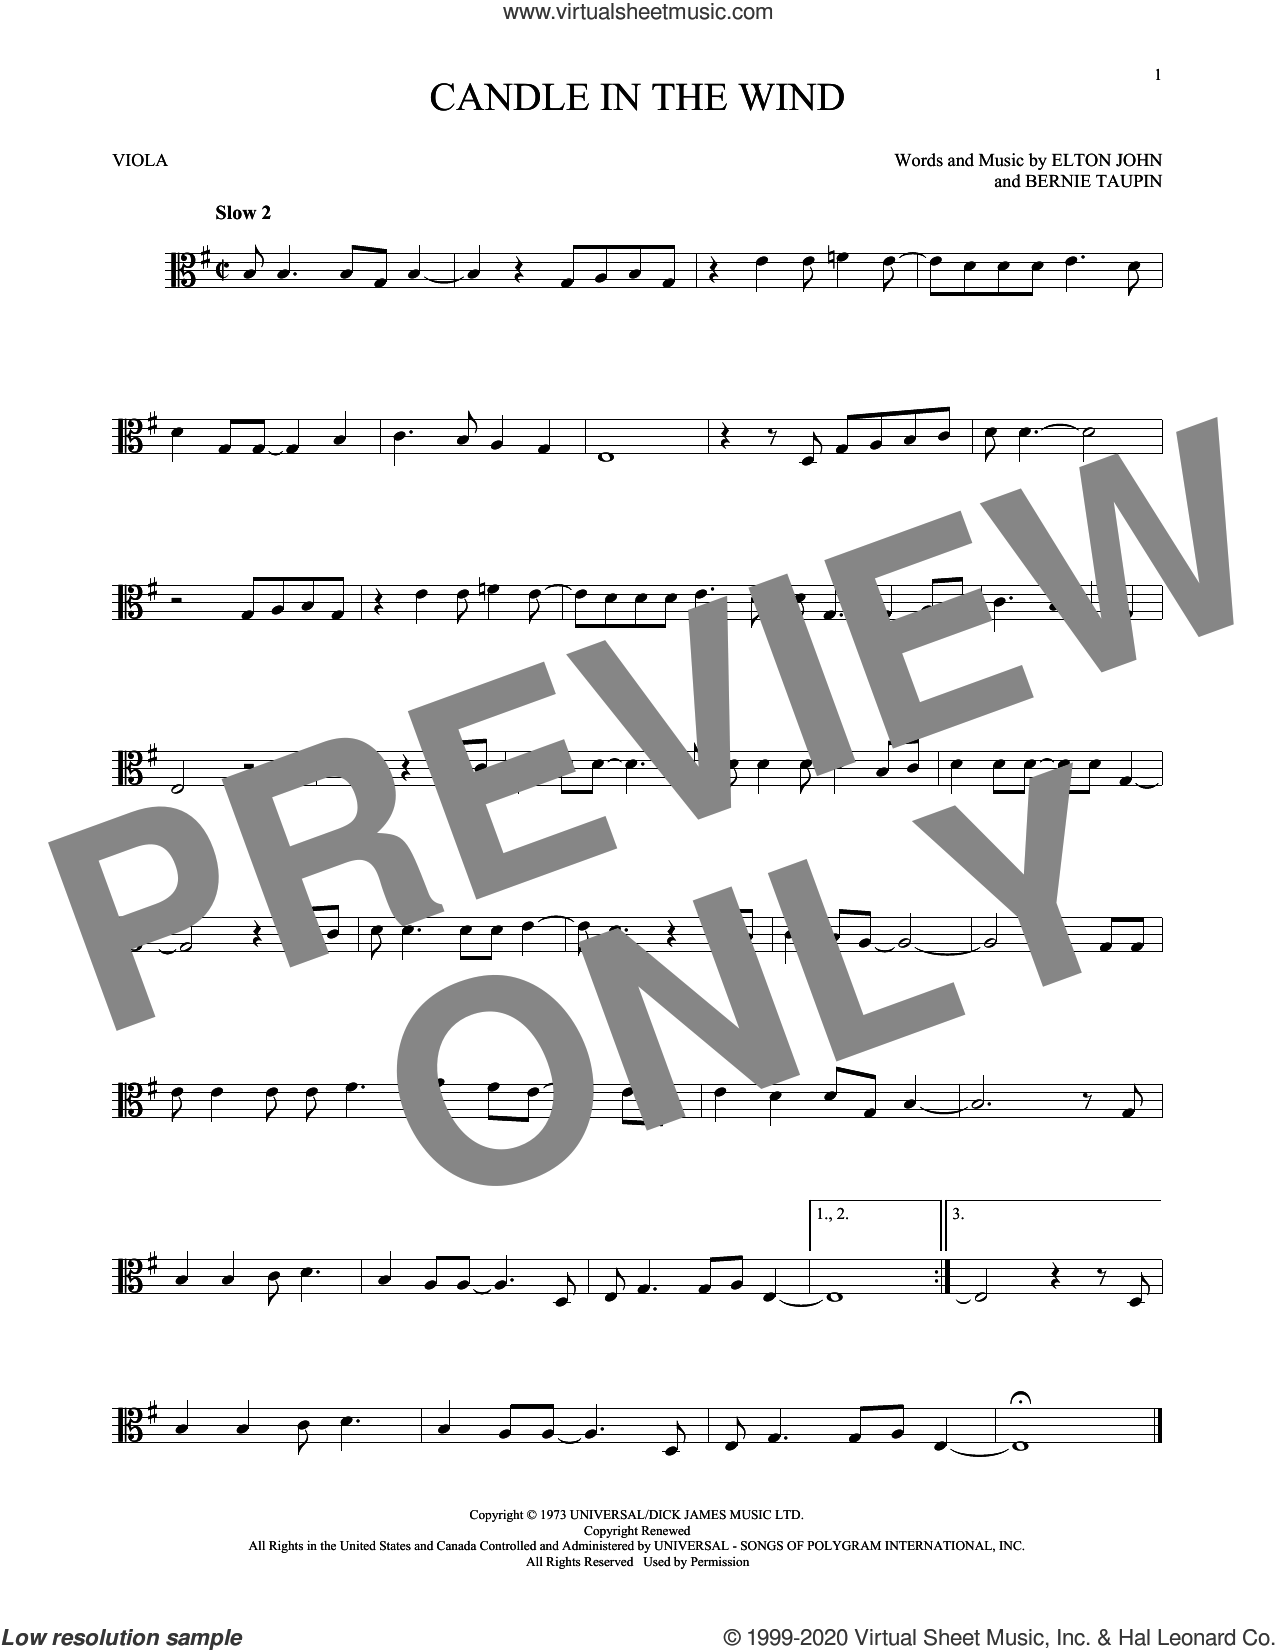 Candle In The Wind sheet music for viola solo by Elton John and Bernie Taupin, intermediate skill level